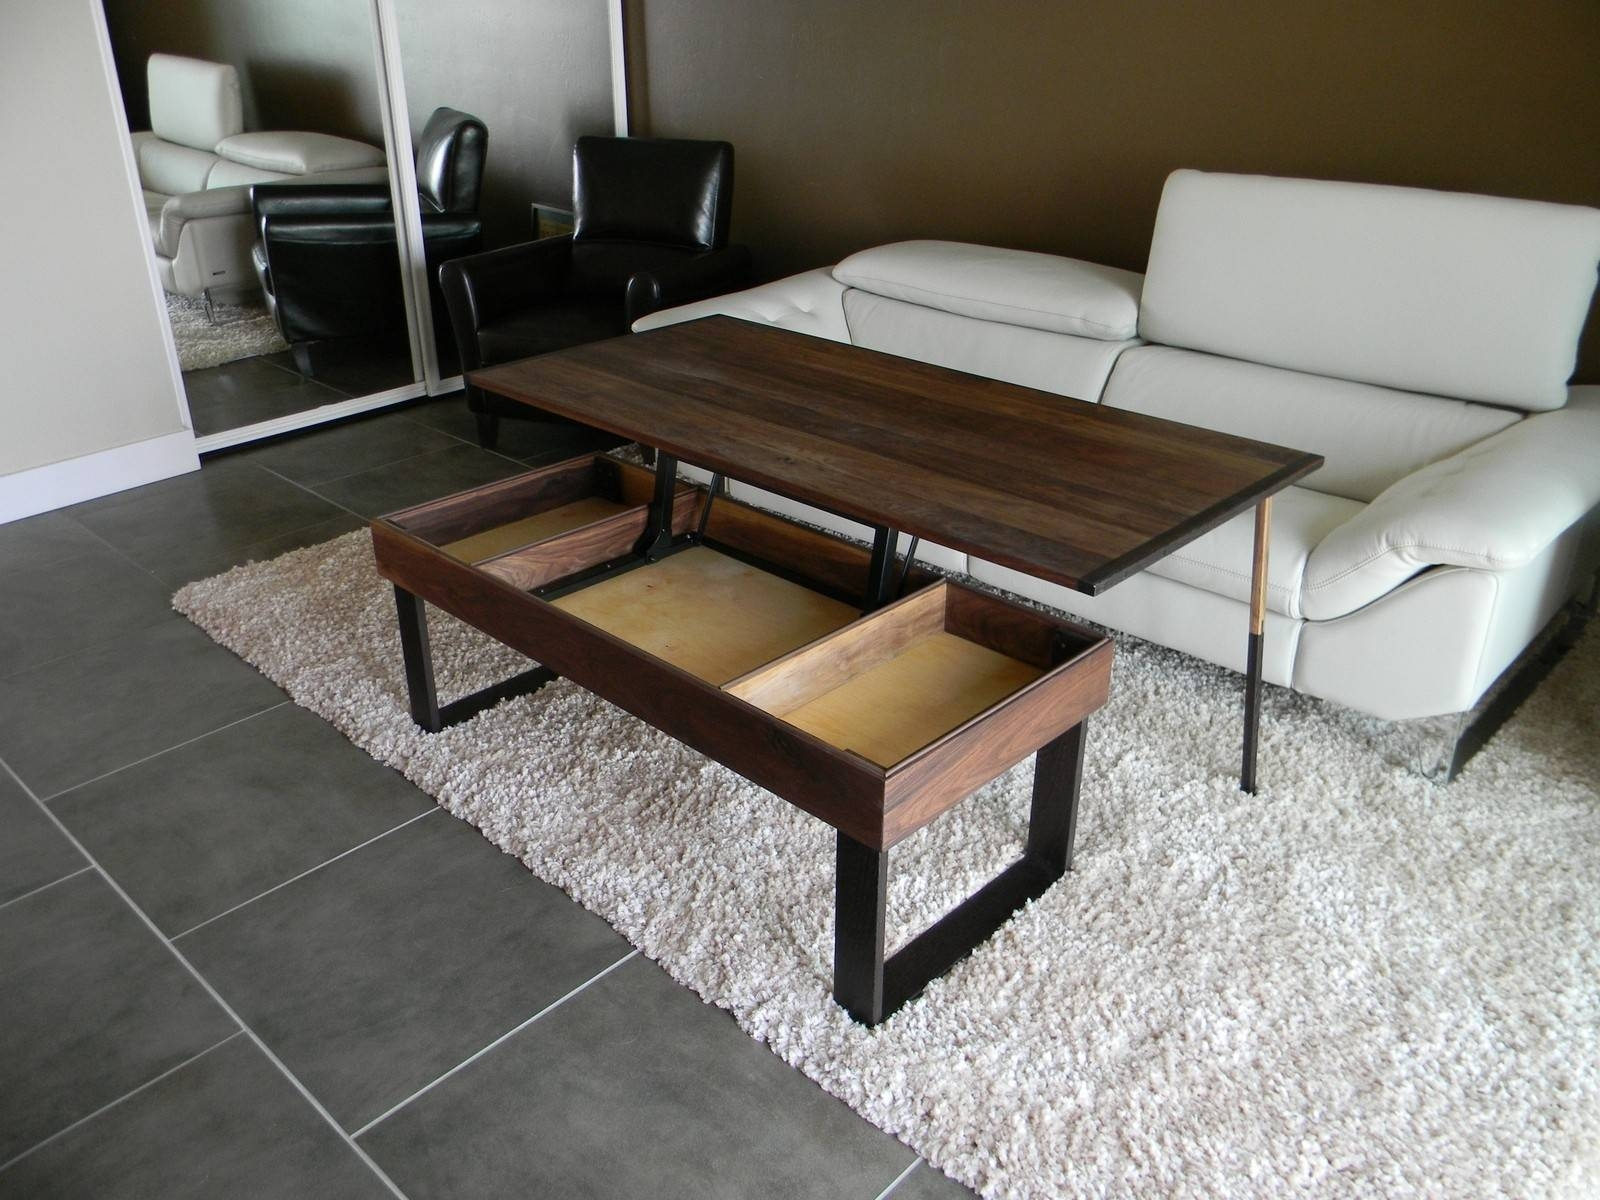 Coffee Table: Stylish Adjustable Height Coffee Table Designs with regard to Raisable Coffee Tables (Image 12 of 30)